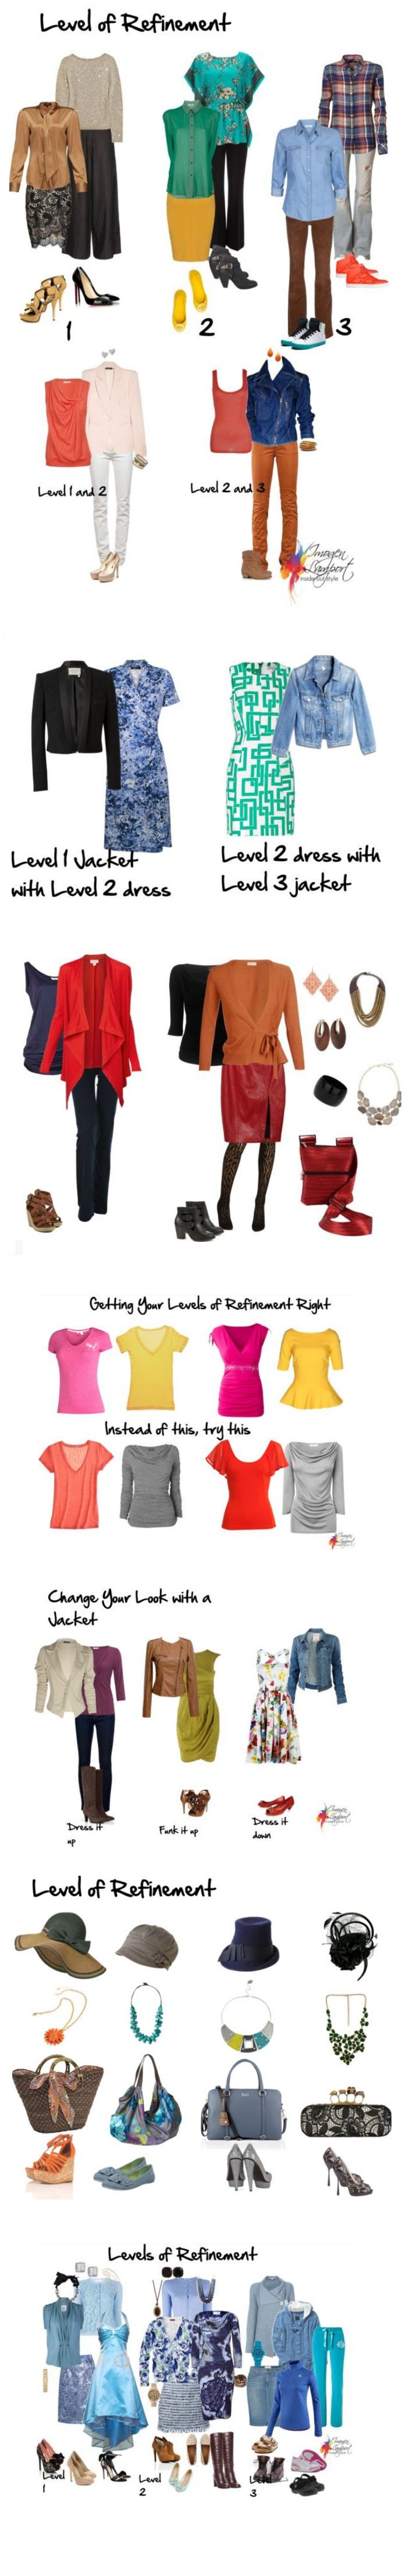 levels of refinement, style, Imogen Lamport, Wardrobe Therapy, Inside out Style blog, Bespoke Image, Image Consultant, Colour Analysis